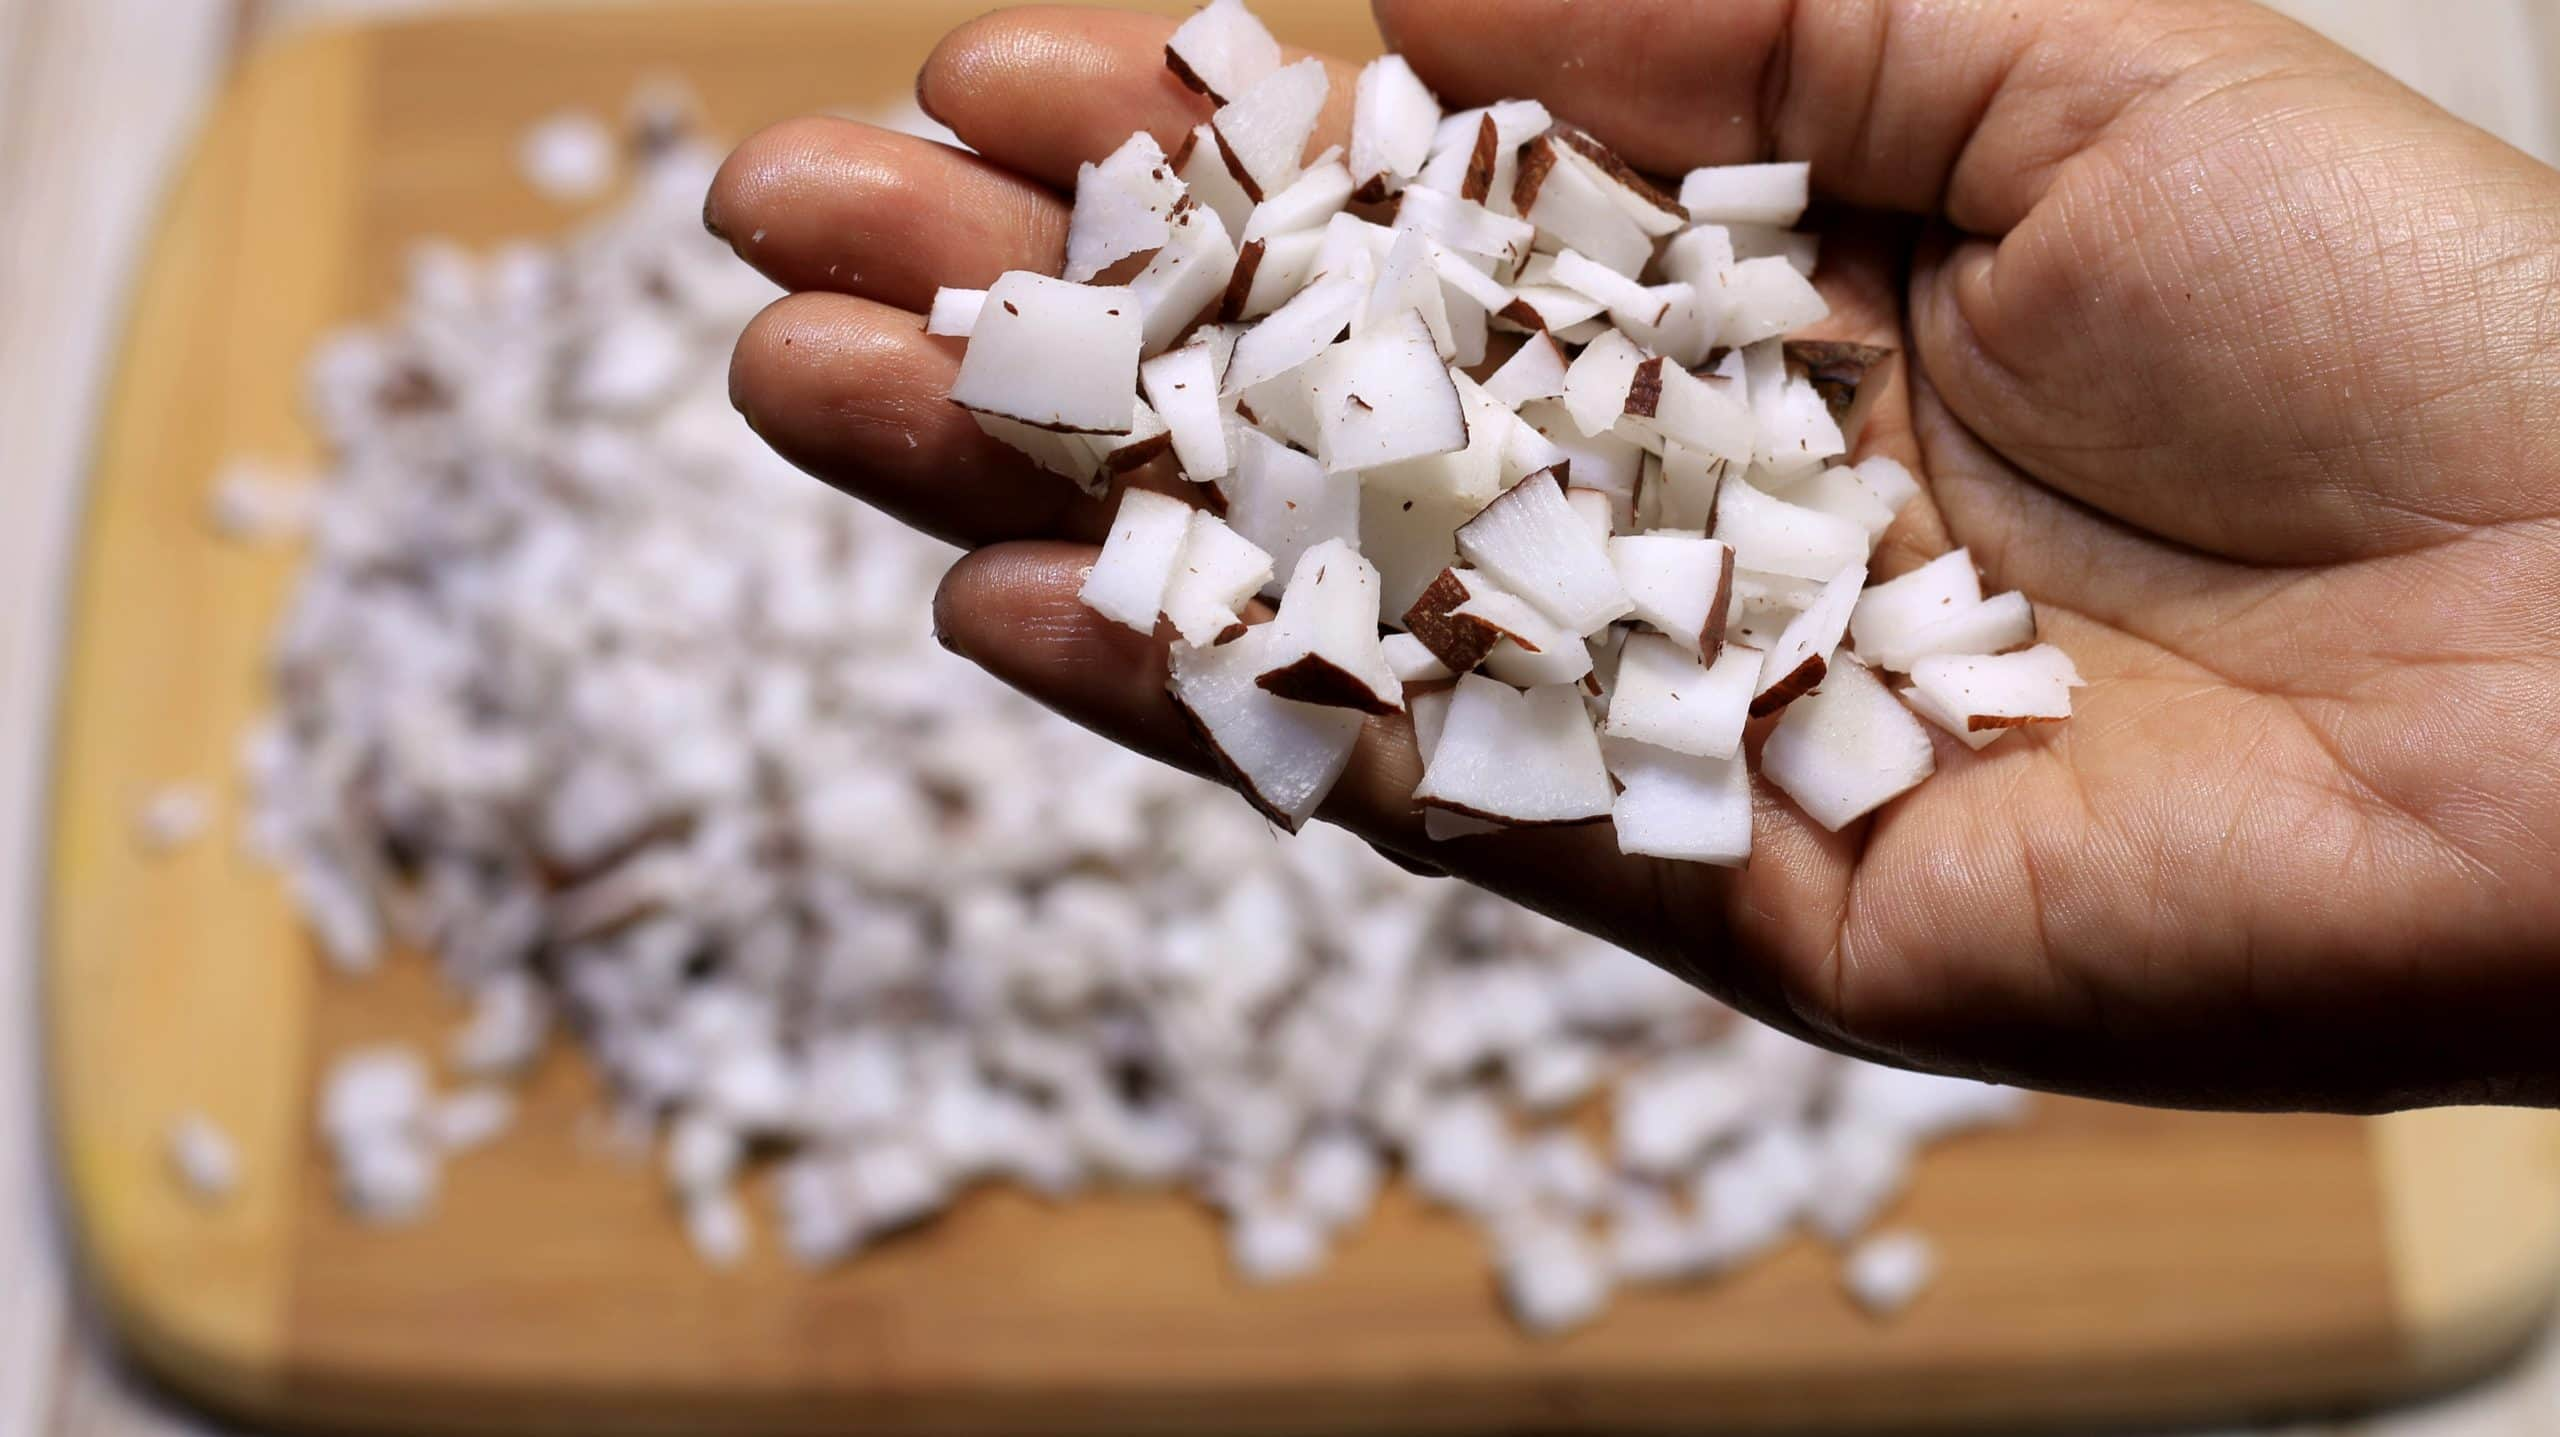 Shell and dice the coconut into smaller pieces